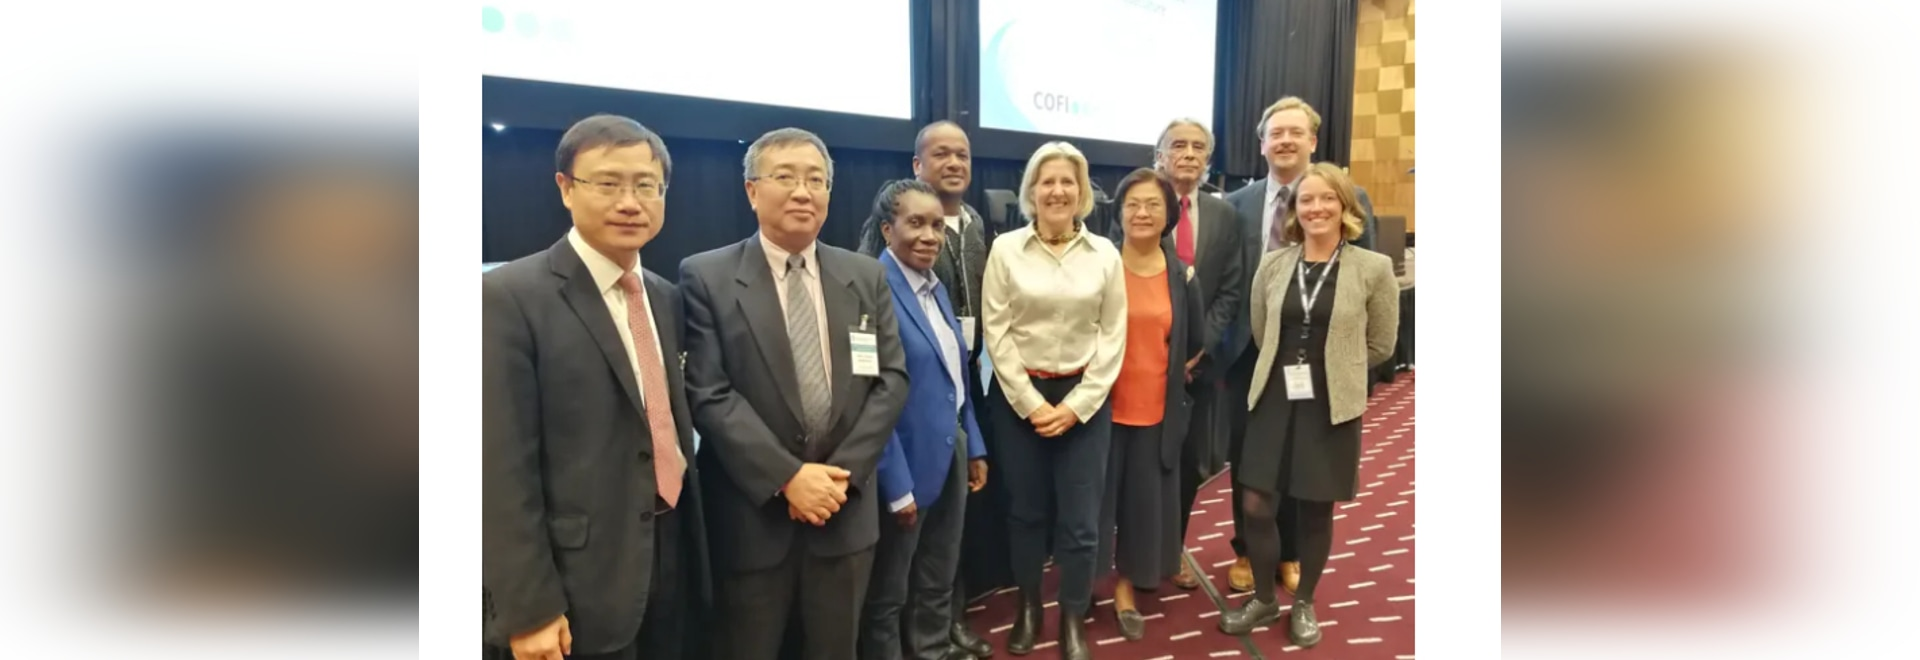 Prof Elizabeth Cottier-Cook of SAMS (fifth from left) who heads up the GlobalSeaweedSTAR project, hosted a side event at the Food and Agriculture Organization (FAO) sub-committee on aquaculture to ...